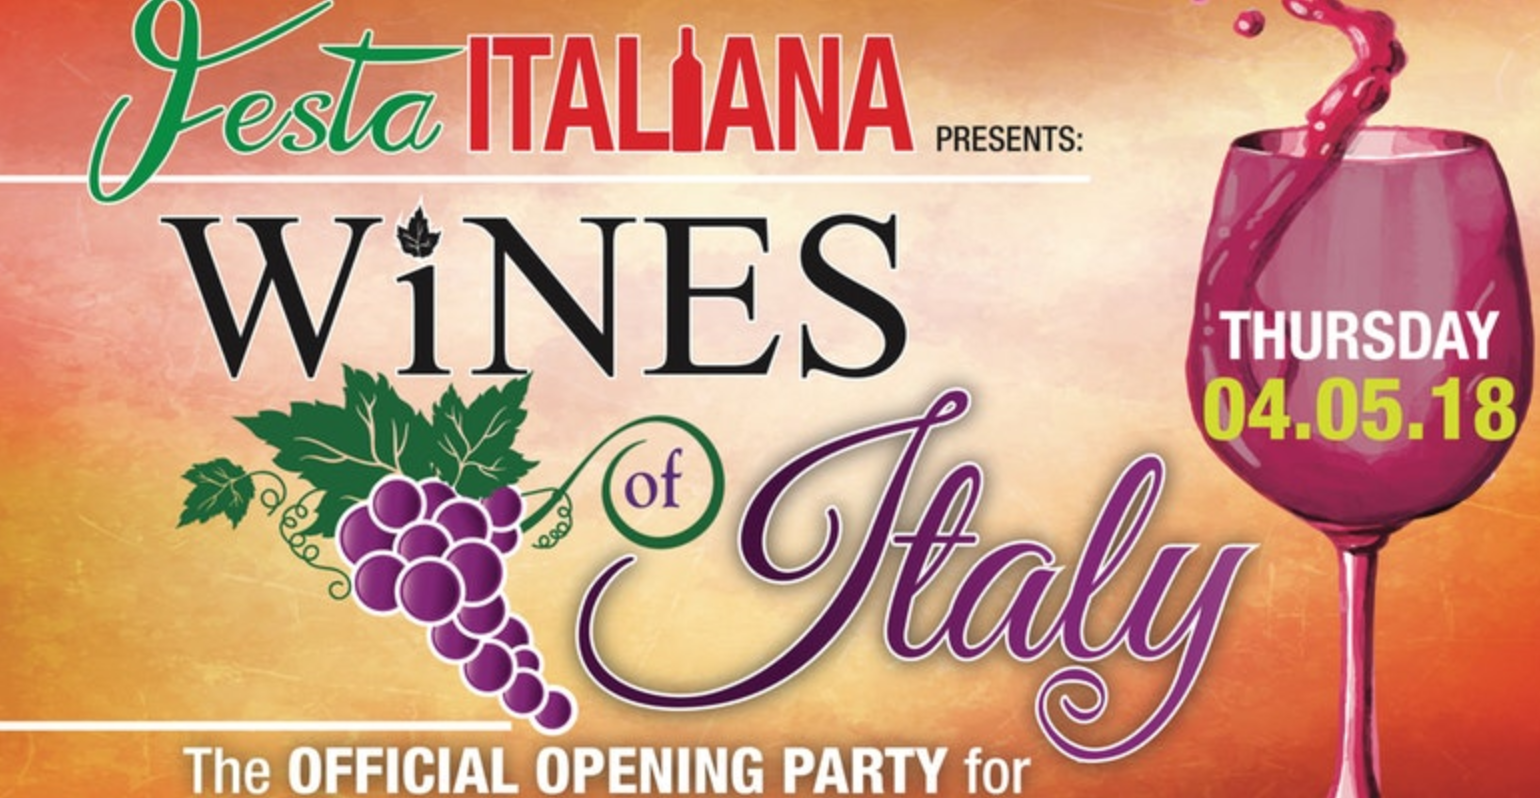 Wines of Italiy Wine Tasting Event for Festa Italiana